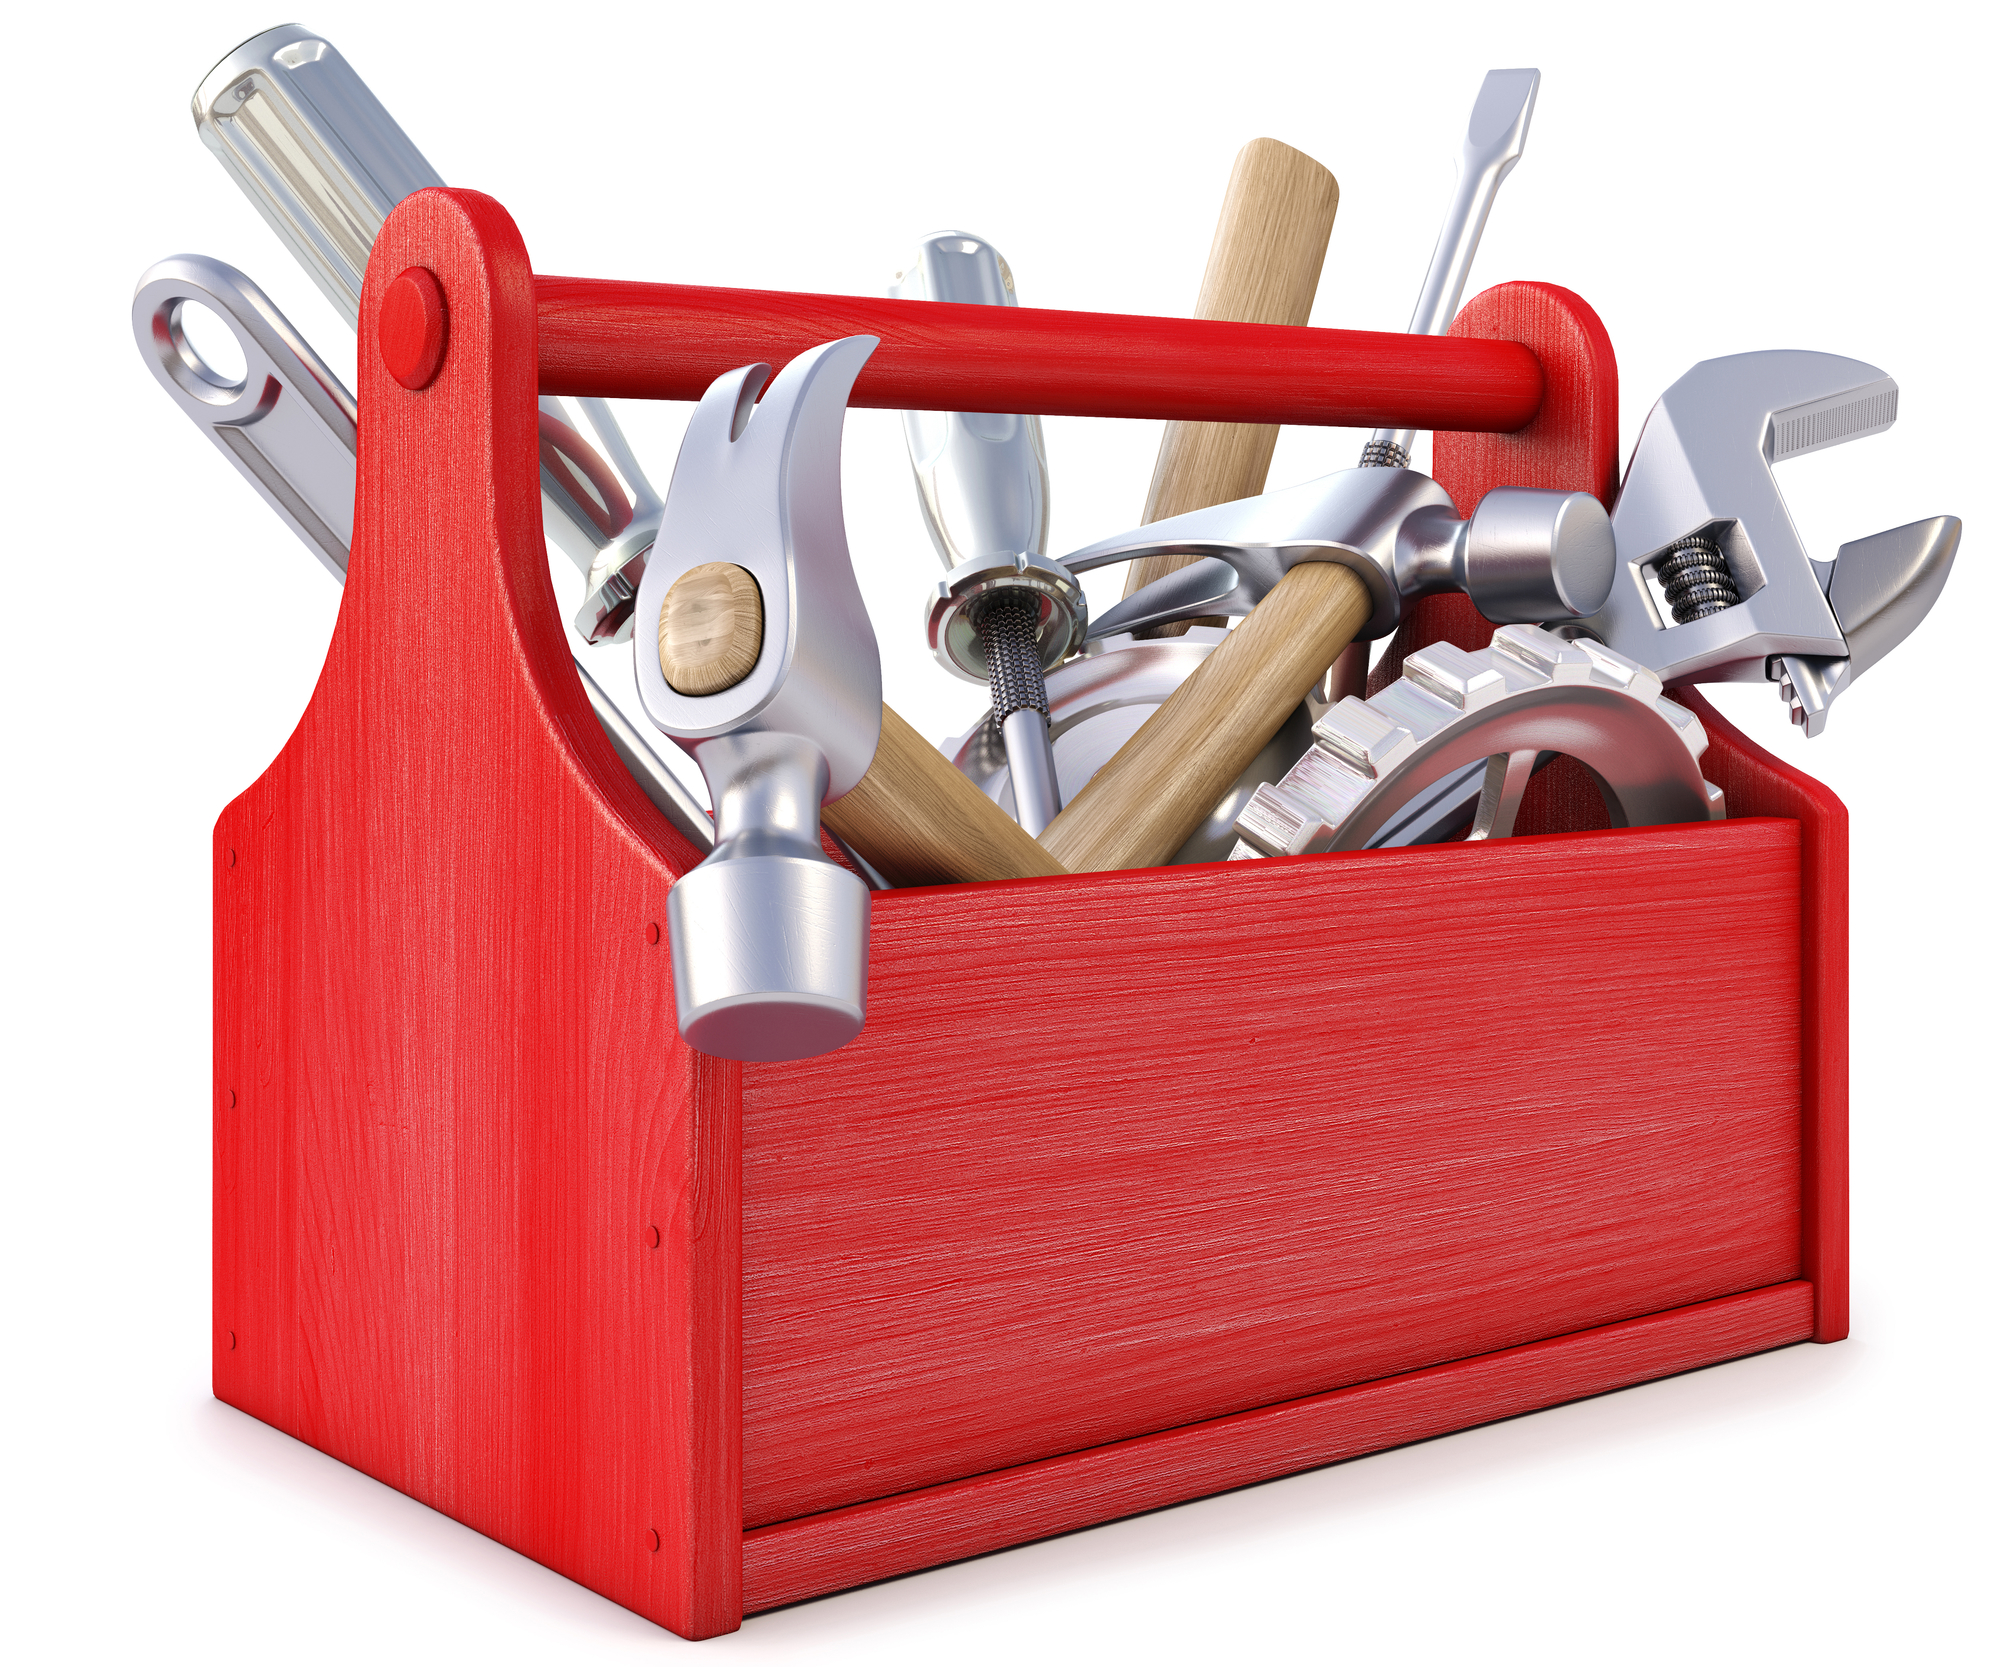 Red Toolbox With Tools Hanging Out